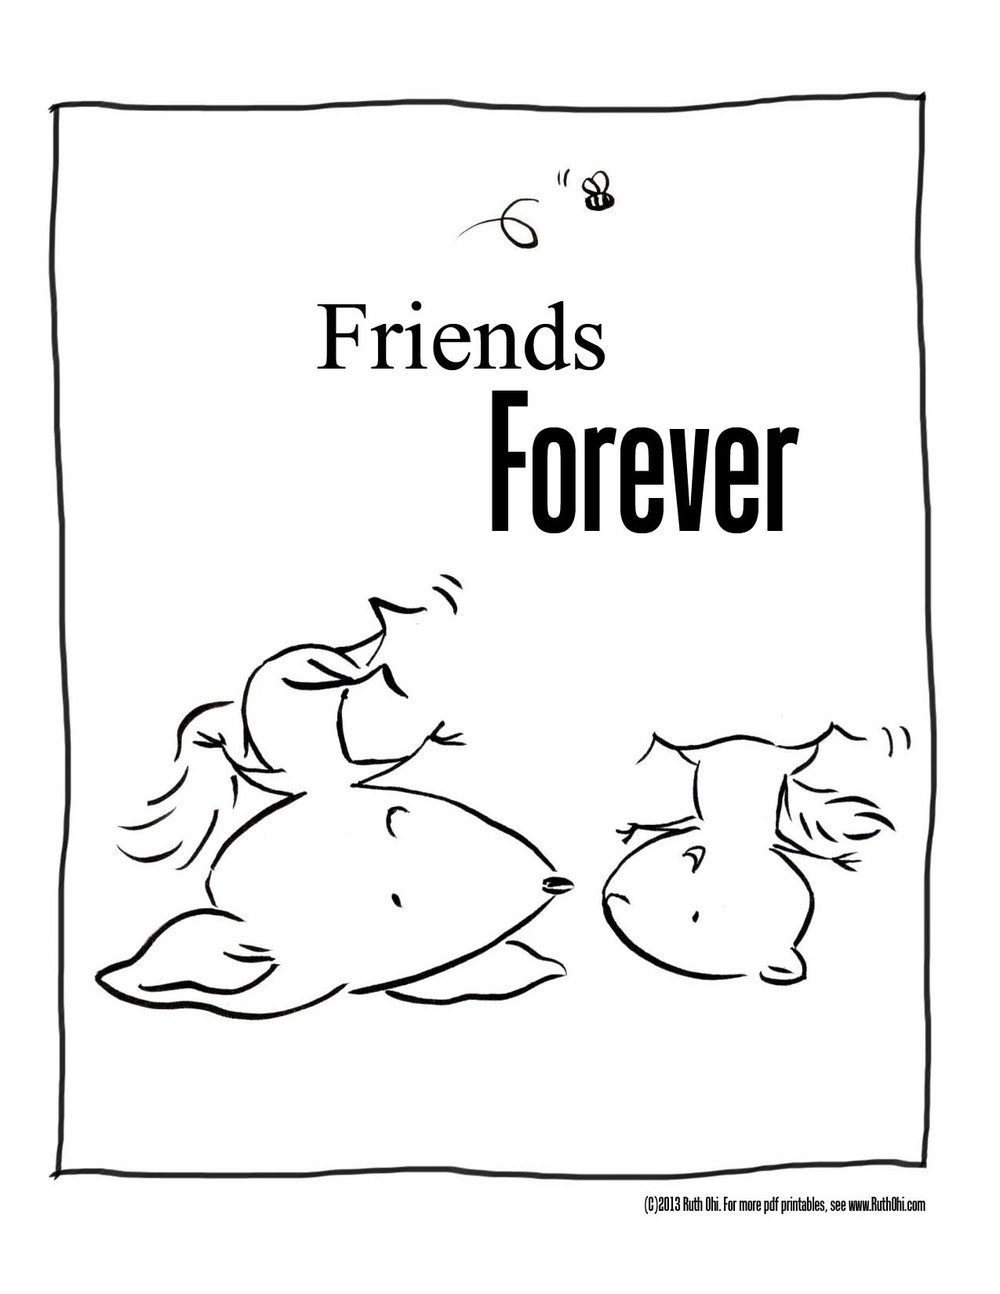 friends forever 1a.jpg